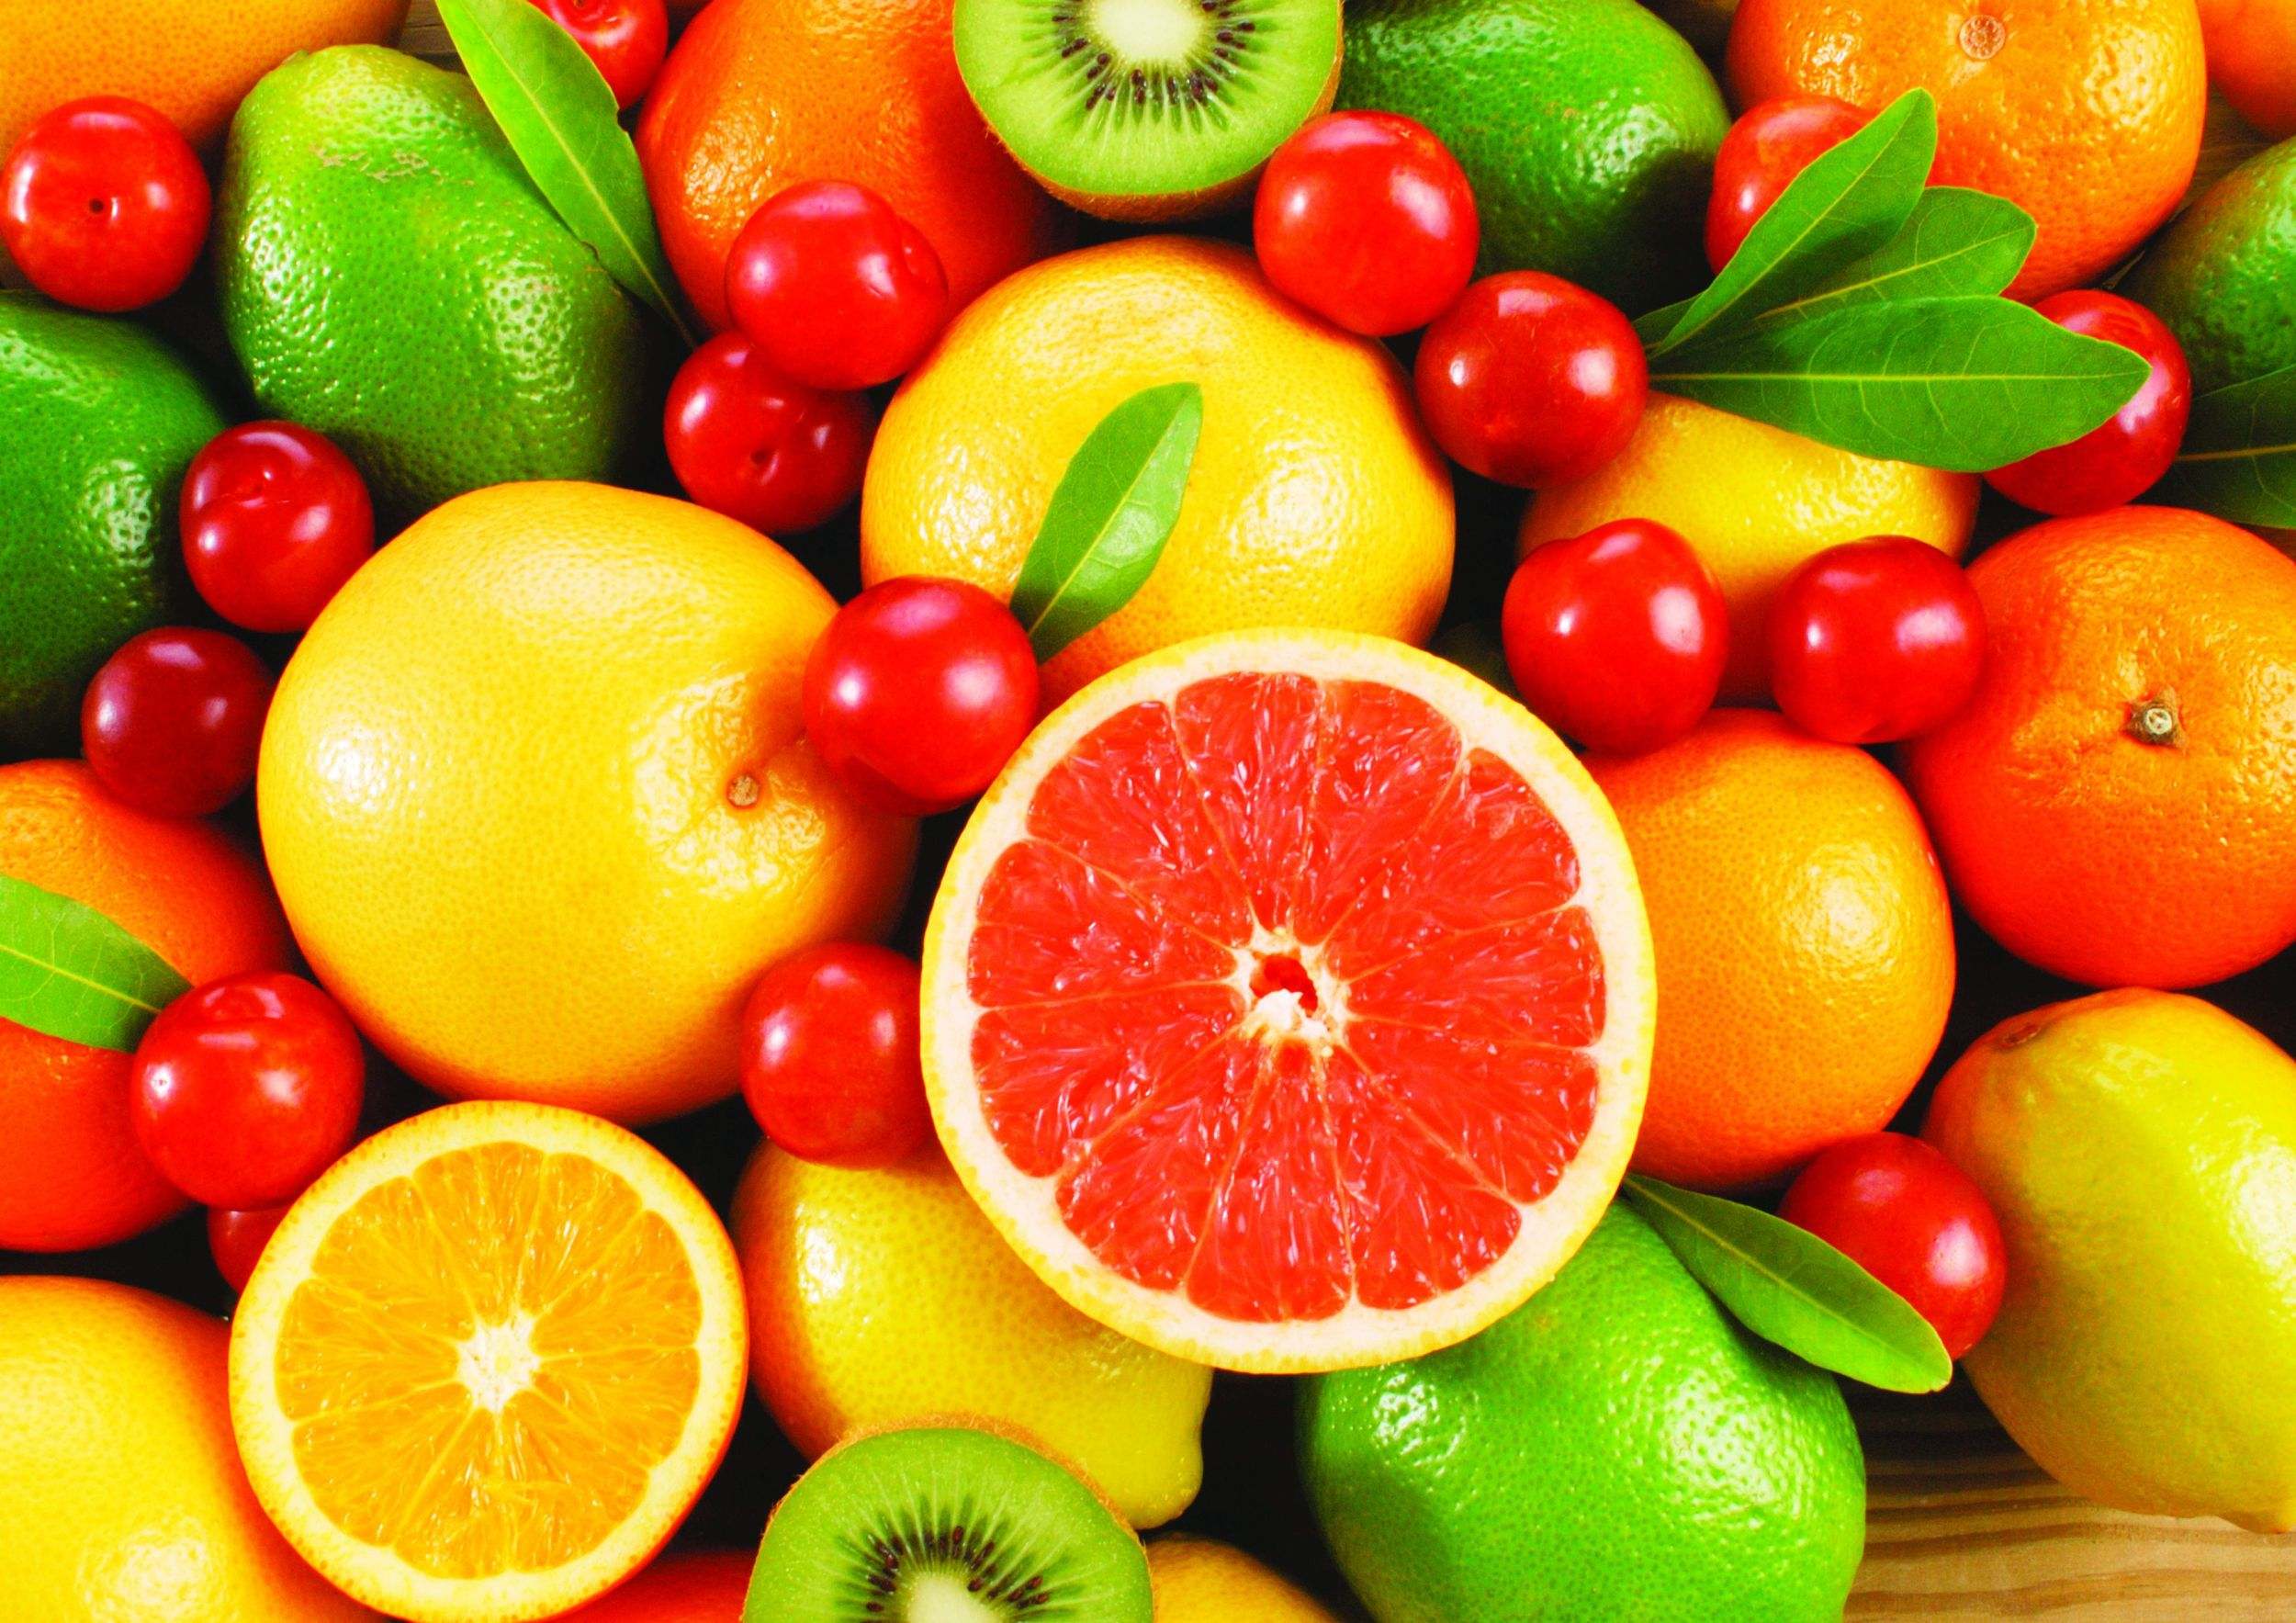 Wallpaper of fruits - Desktop Fruit And Vegetable Images Free Wallpaper Desktop Fruit